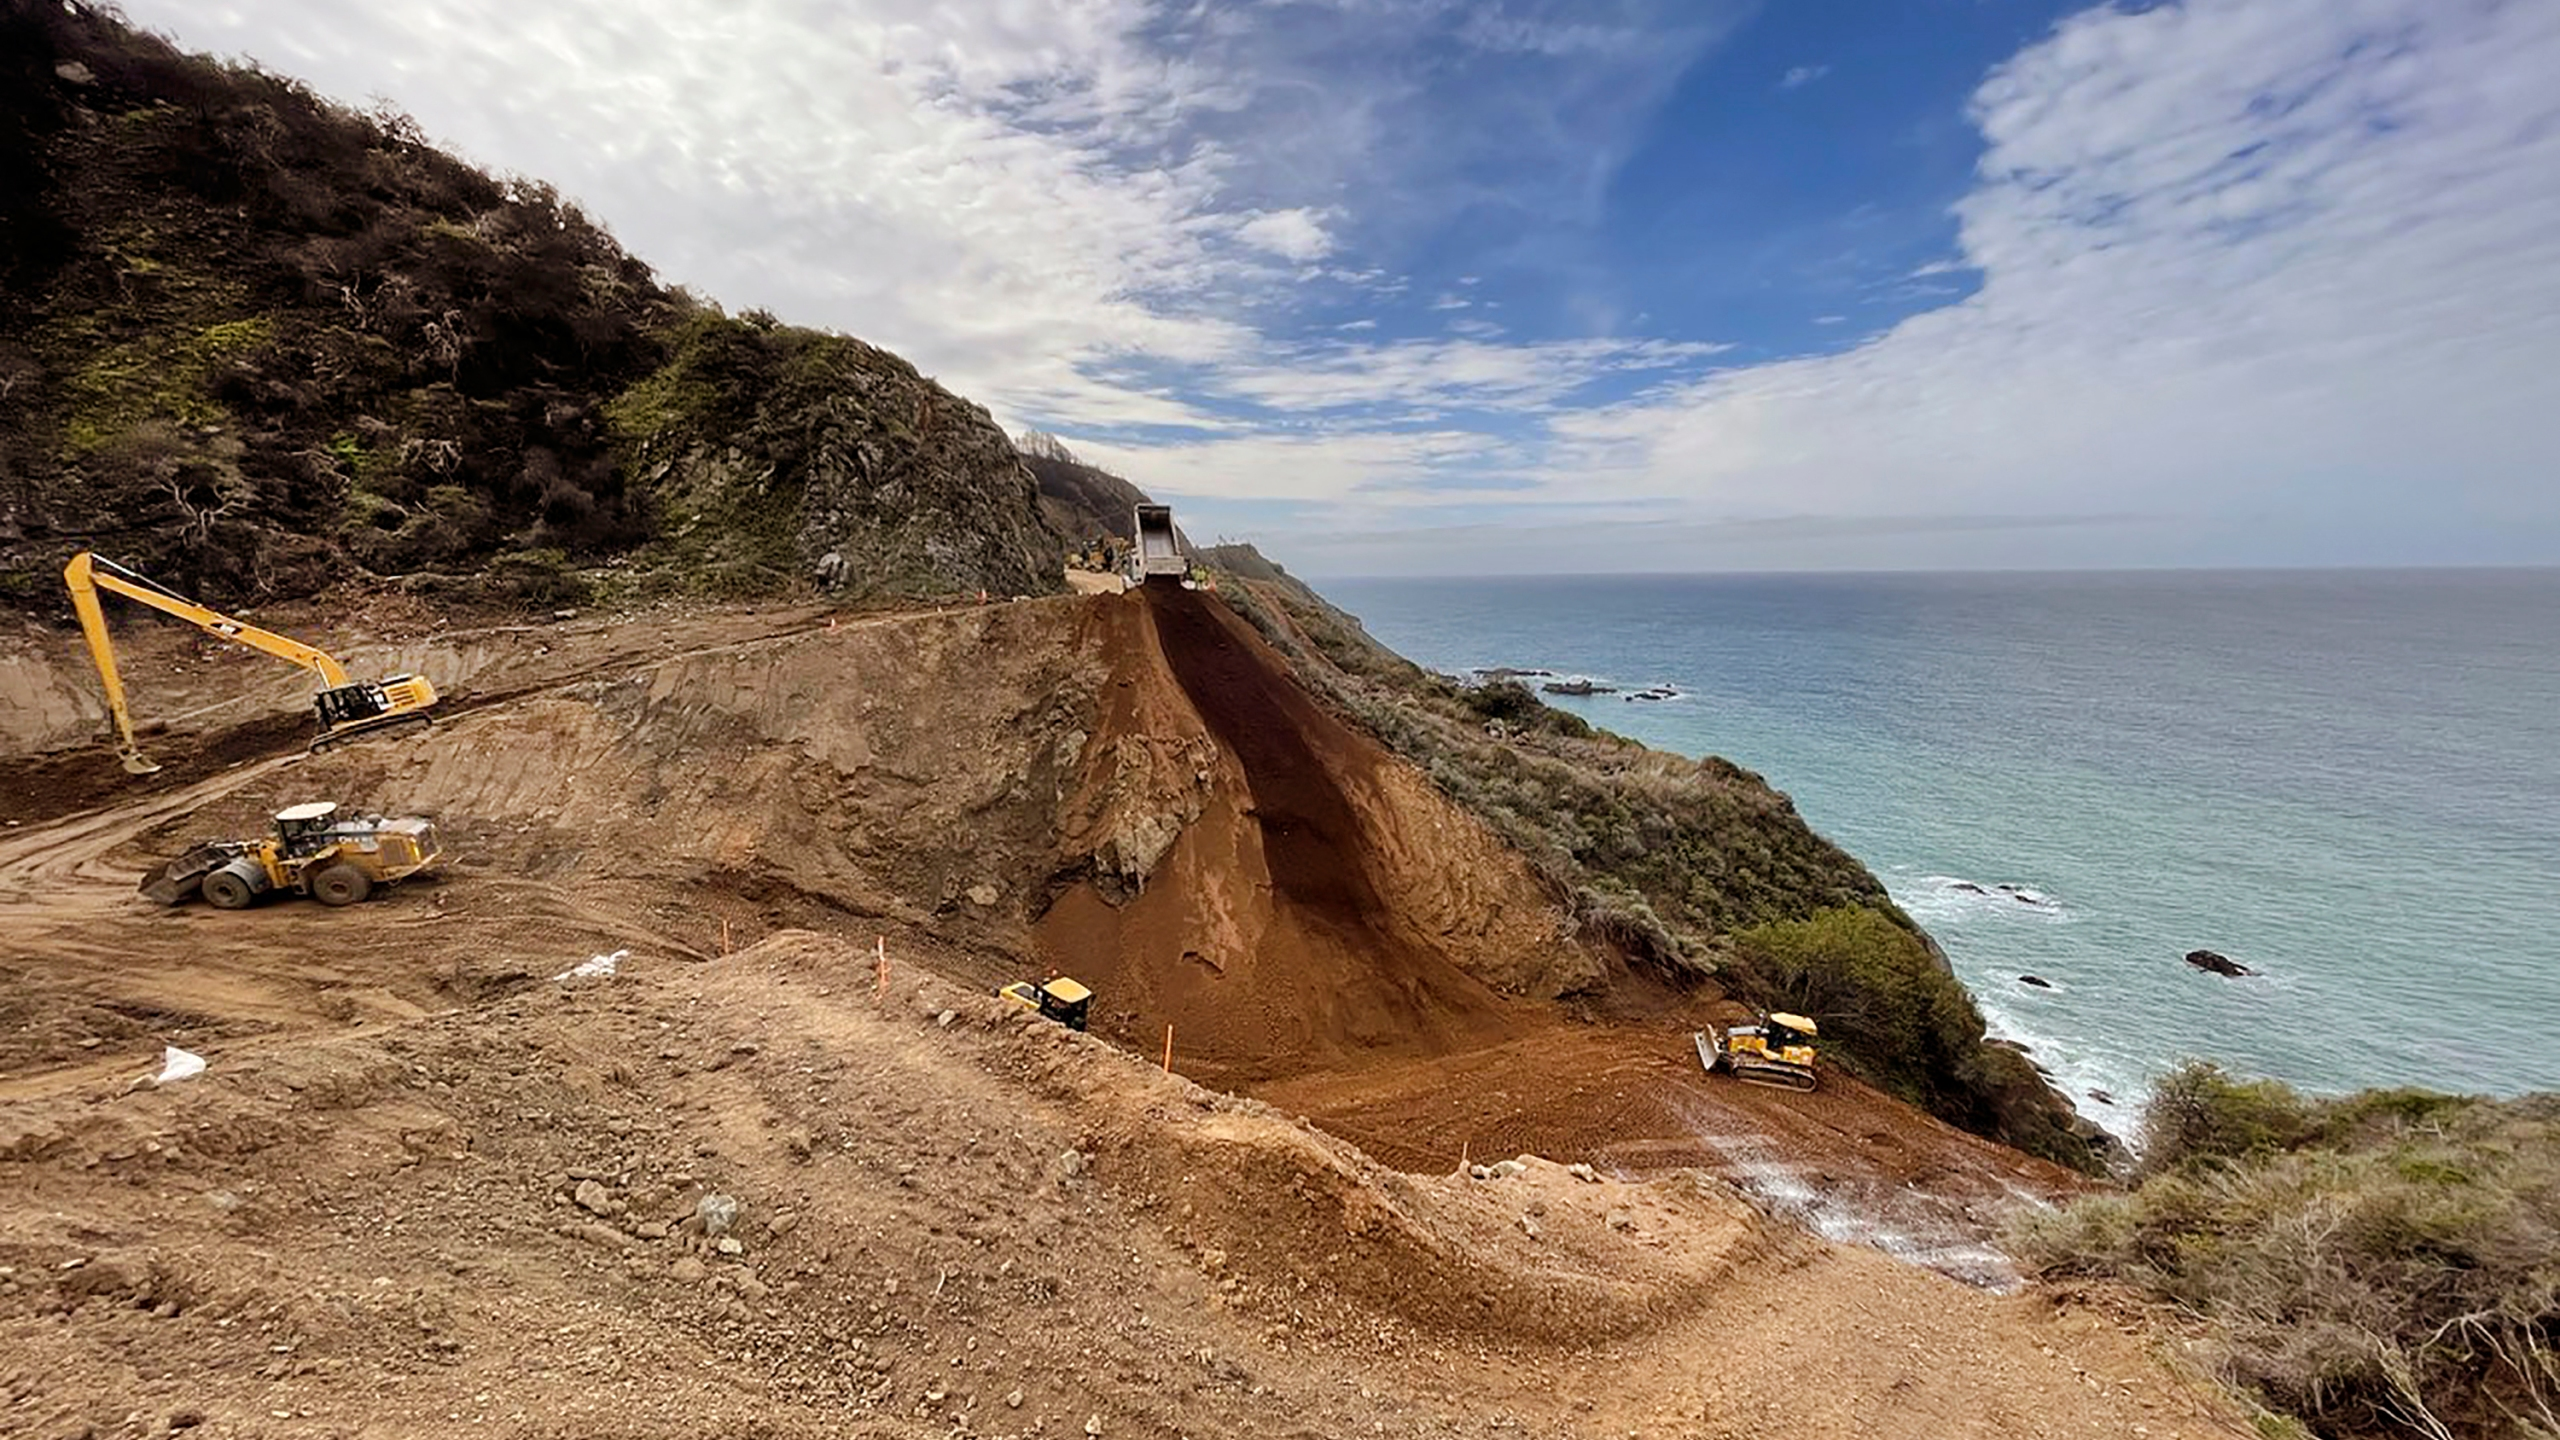 In this April 8, 2021, photo provided by the California Department of Transportation, a Caltrans construction crew repairs a section of Highway 1 along the Pacific Ocean in Big Sur, that was washed away during a winter storm on Jan. 28, 2021. The stretch of road is expected to reopen by April 30, 2021, because work to repair the huge piece of roadway that crumbled during a storm is nearly two months ahead of schedule, the California Department of Transportation announced Thursday, April 8. (Caltrans District 5 via AP)